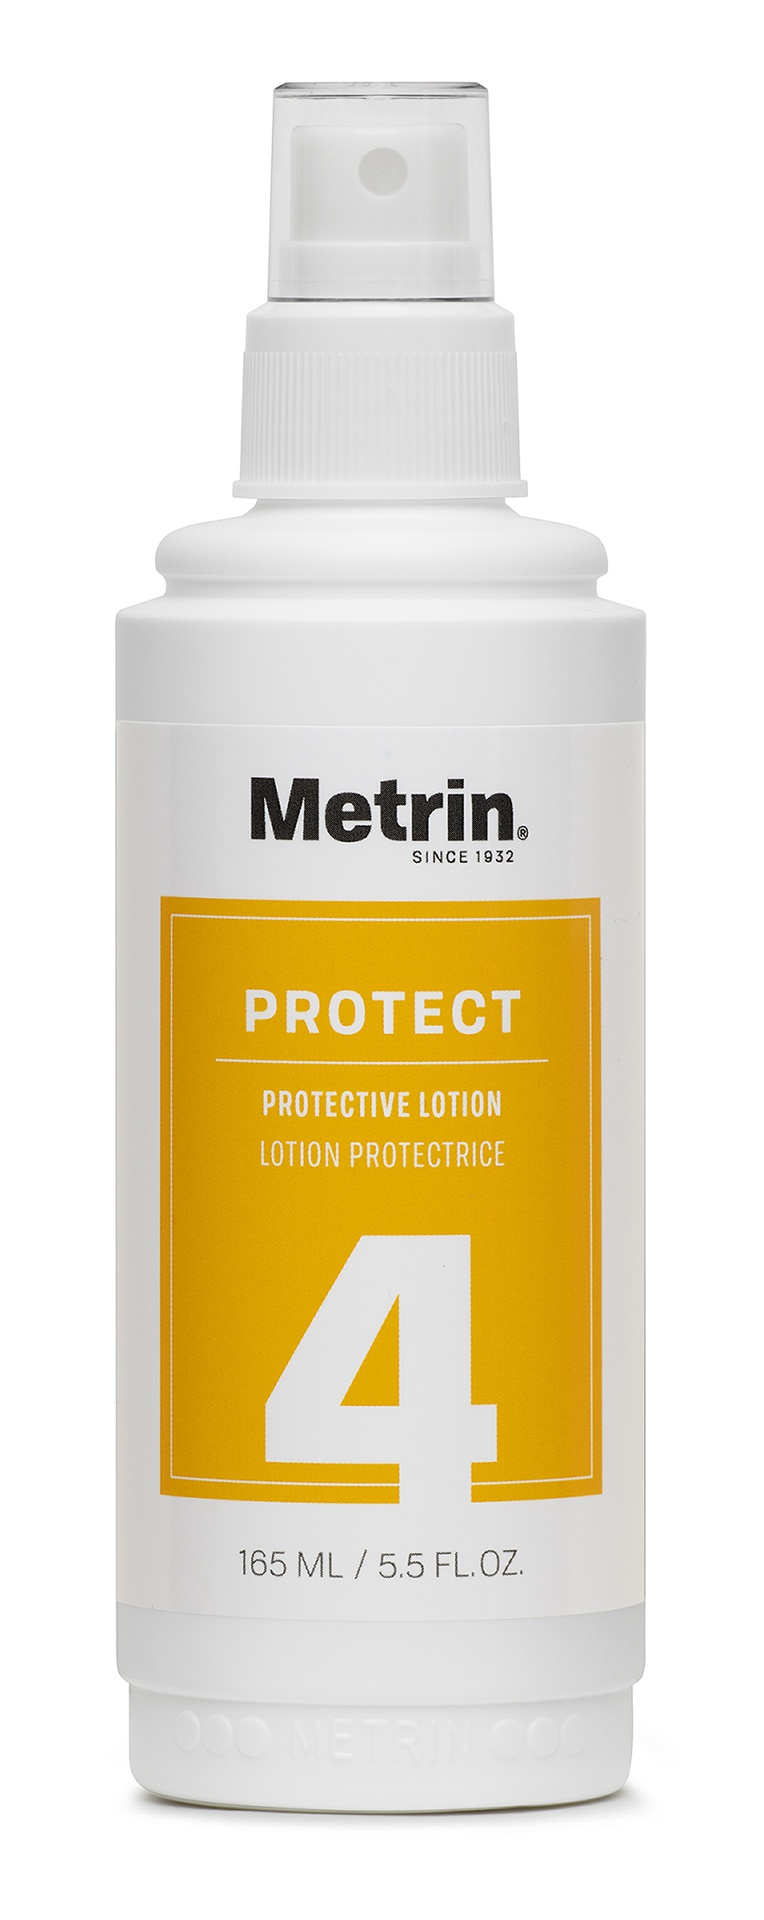 Metrin Protective Lotion For Her